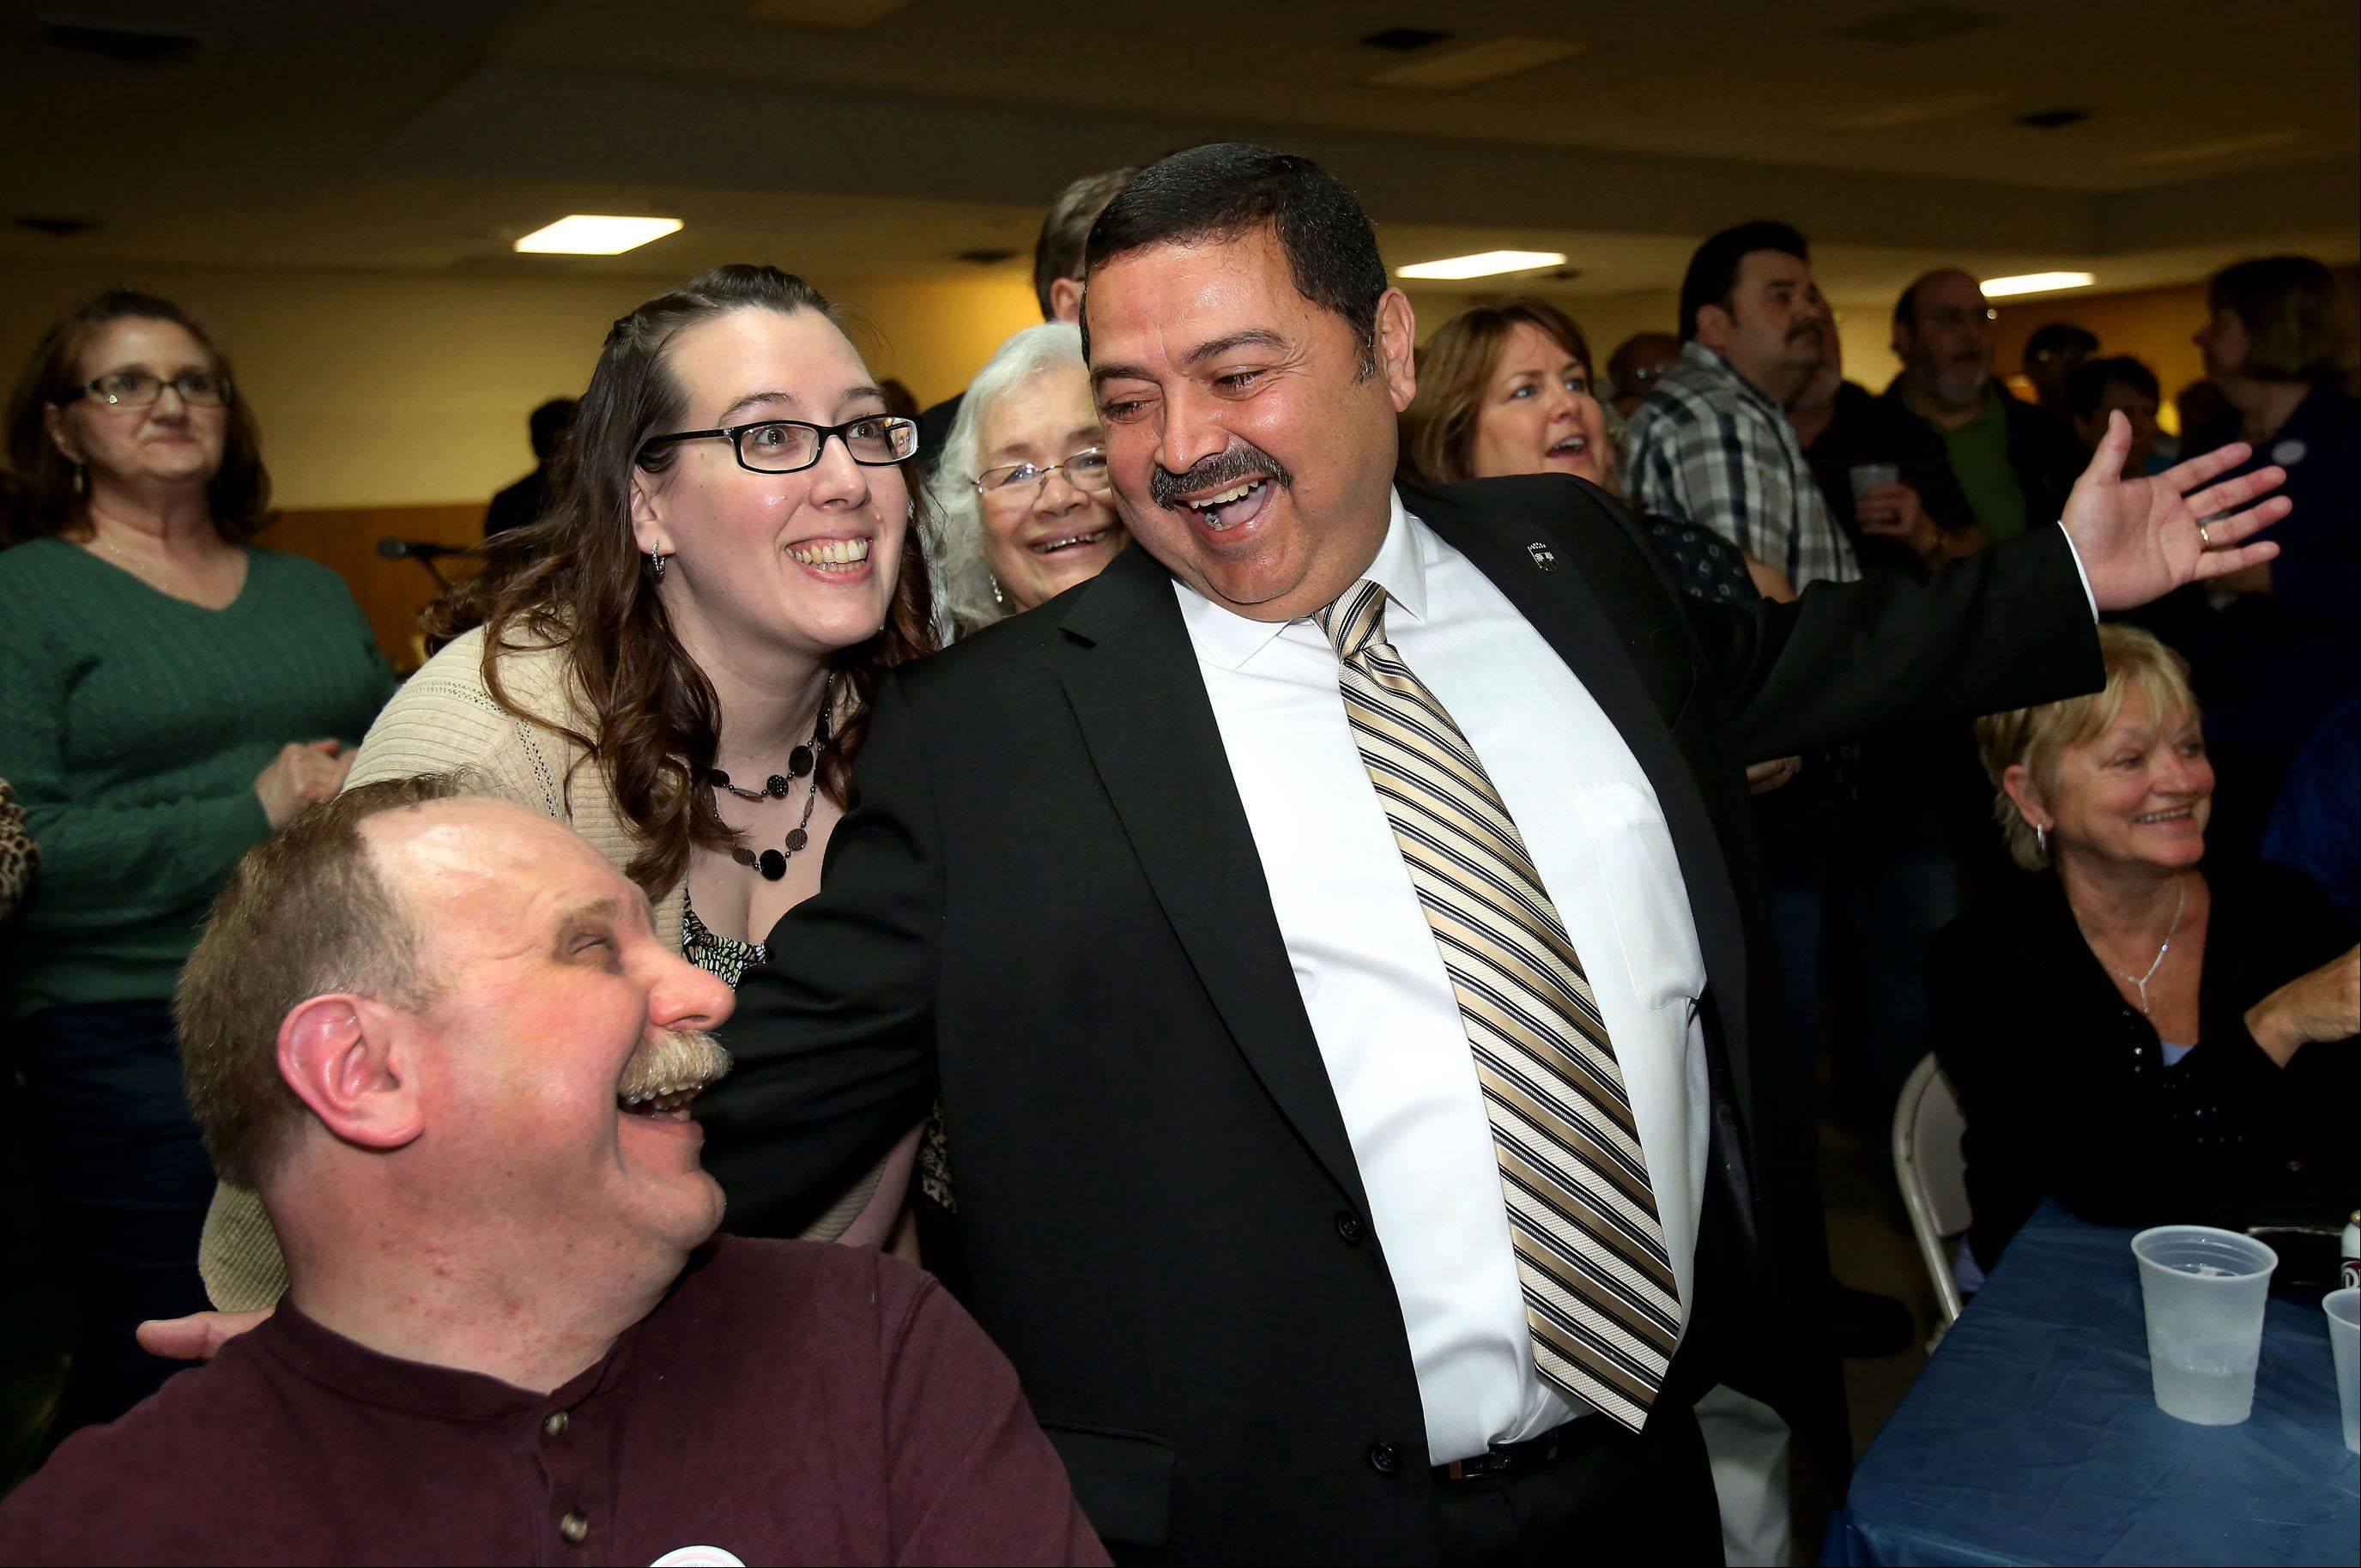 Ruben Pineda, mayoral candidate for West Chicago, right, celebrates his victory on Tuesday, April 9, 2013, in West Chicago with his campaign manager Melissa Birch, center and Gary Saake, left, candidate for District 94 Board of Education.